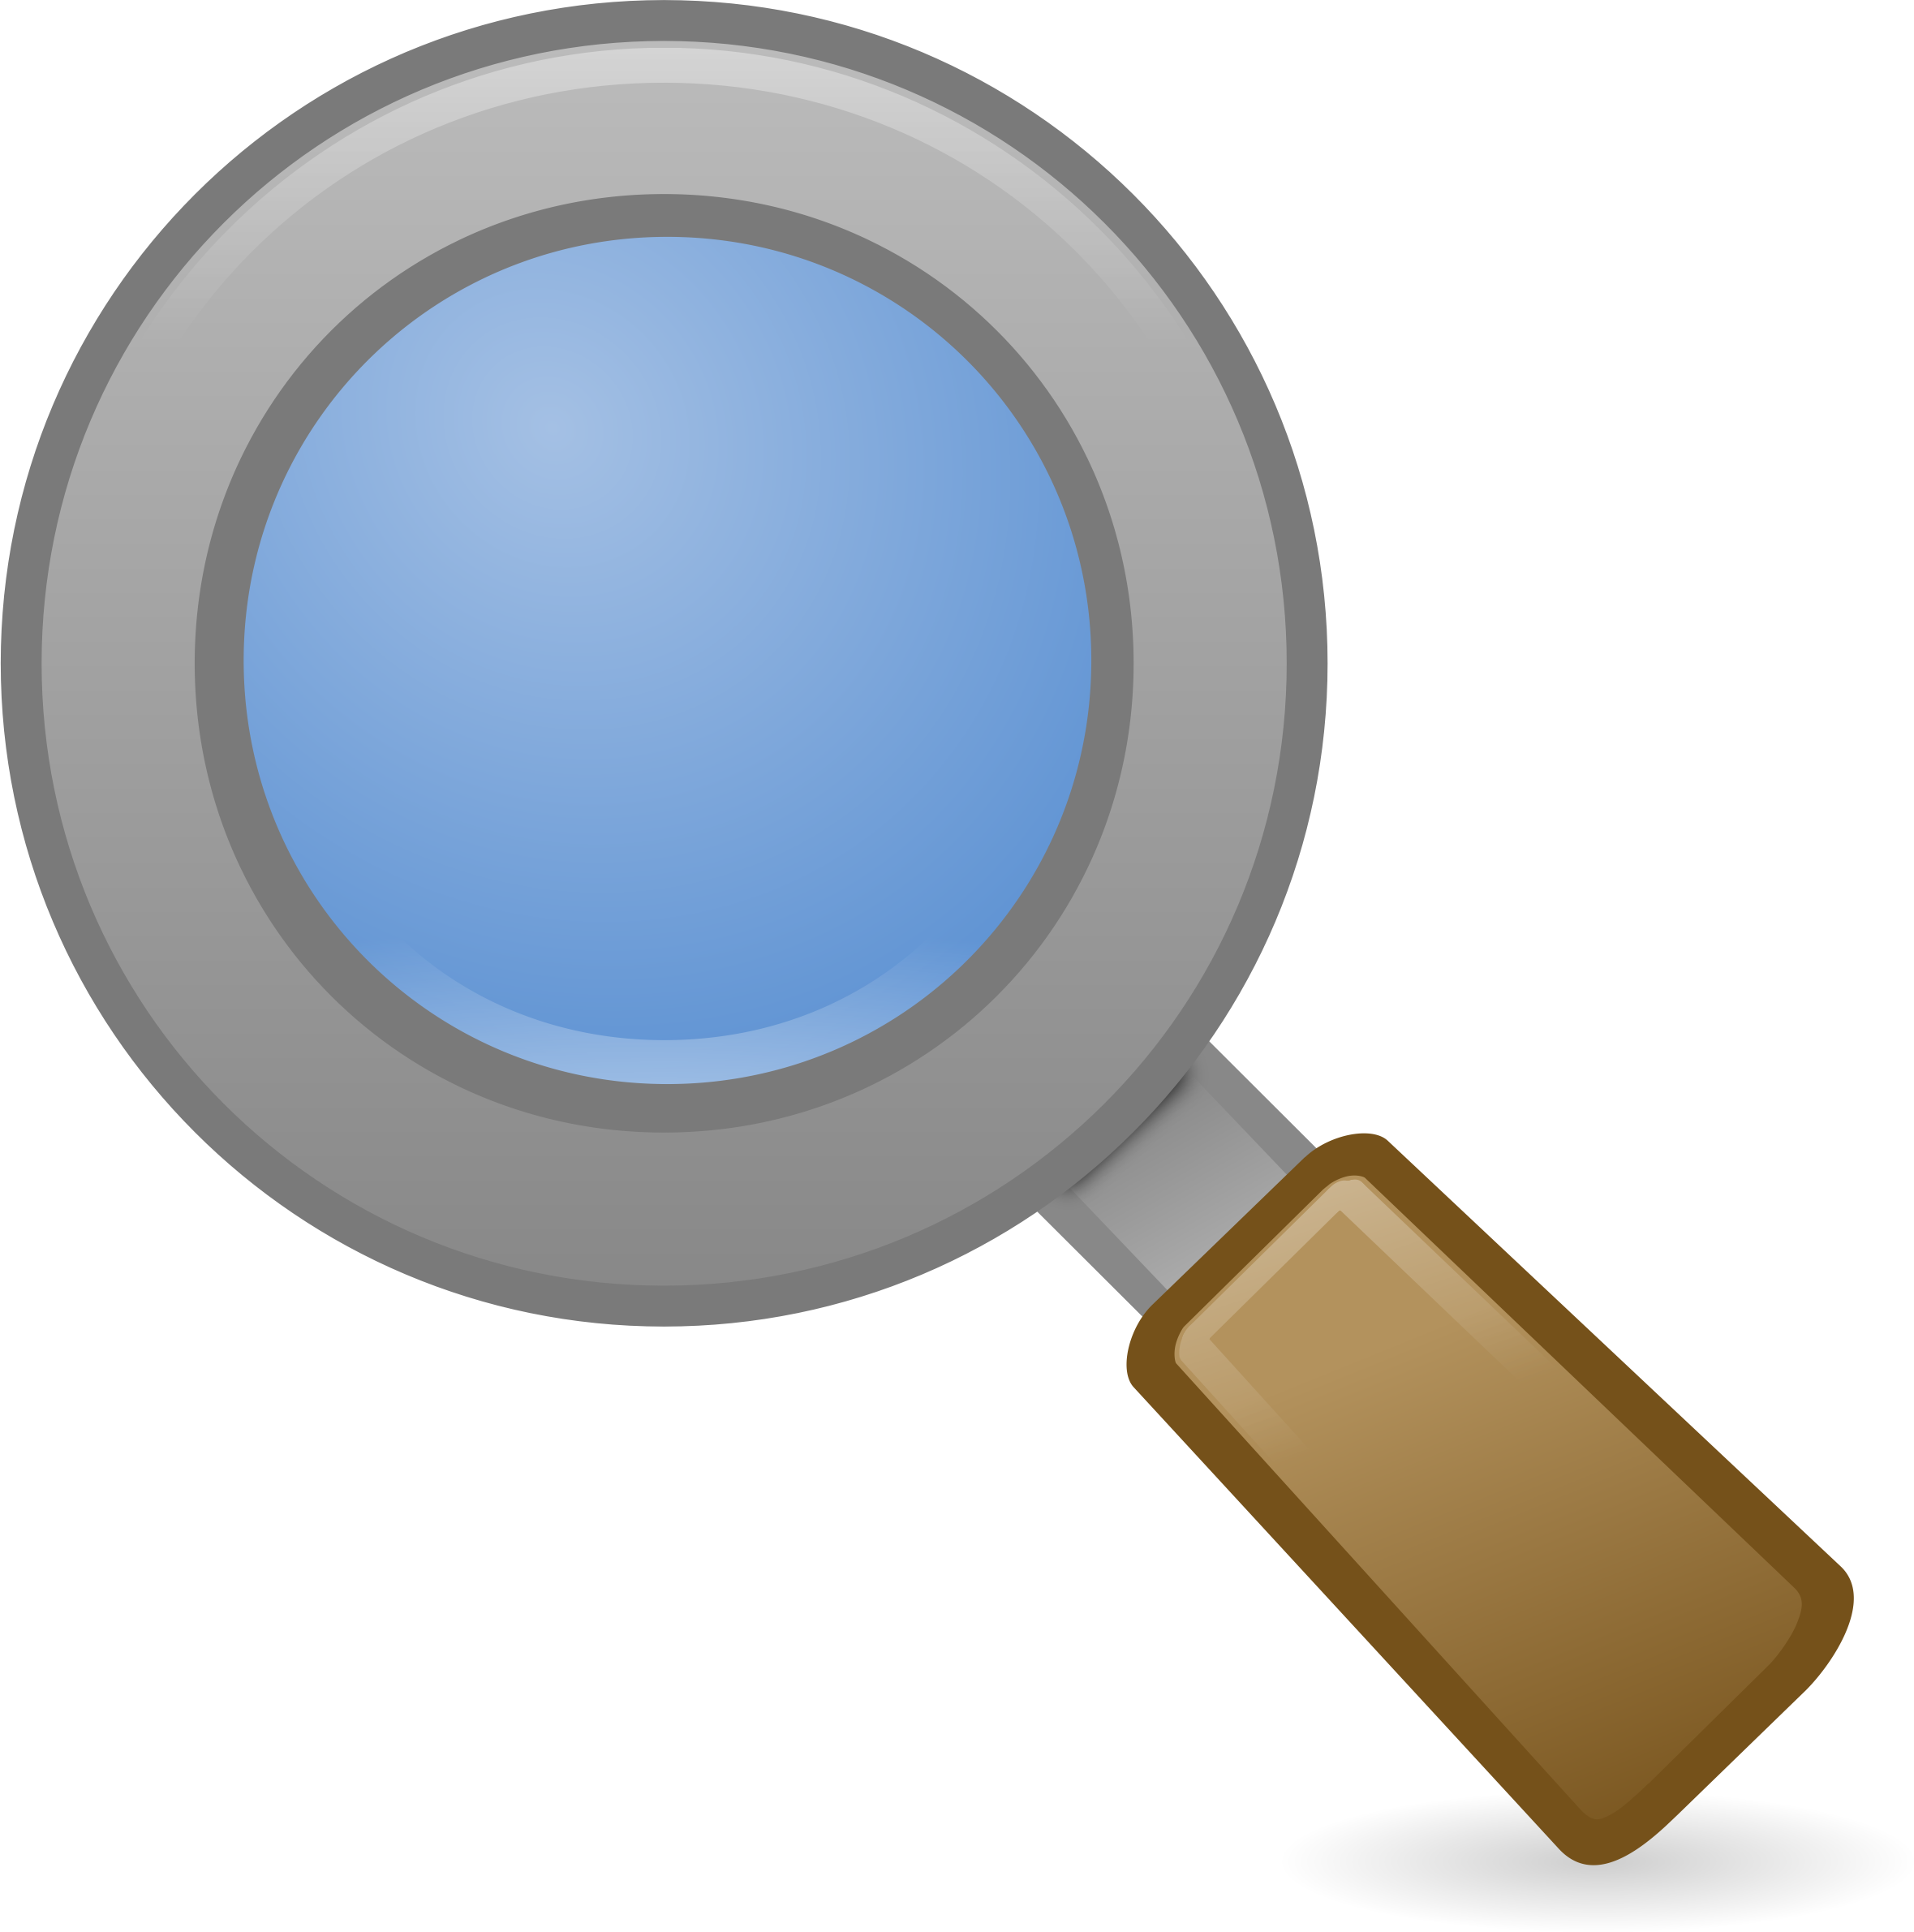 File:System search icon.png.